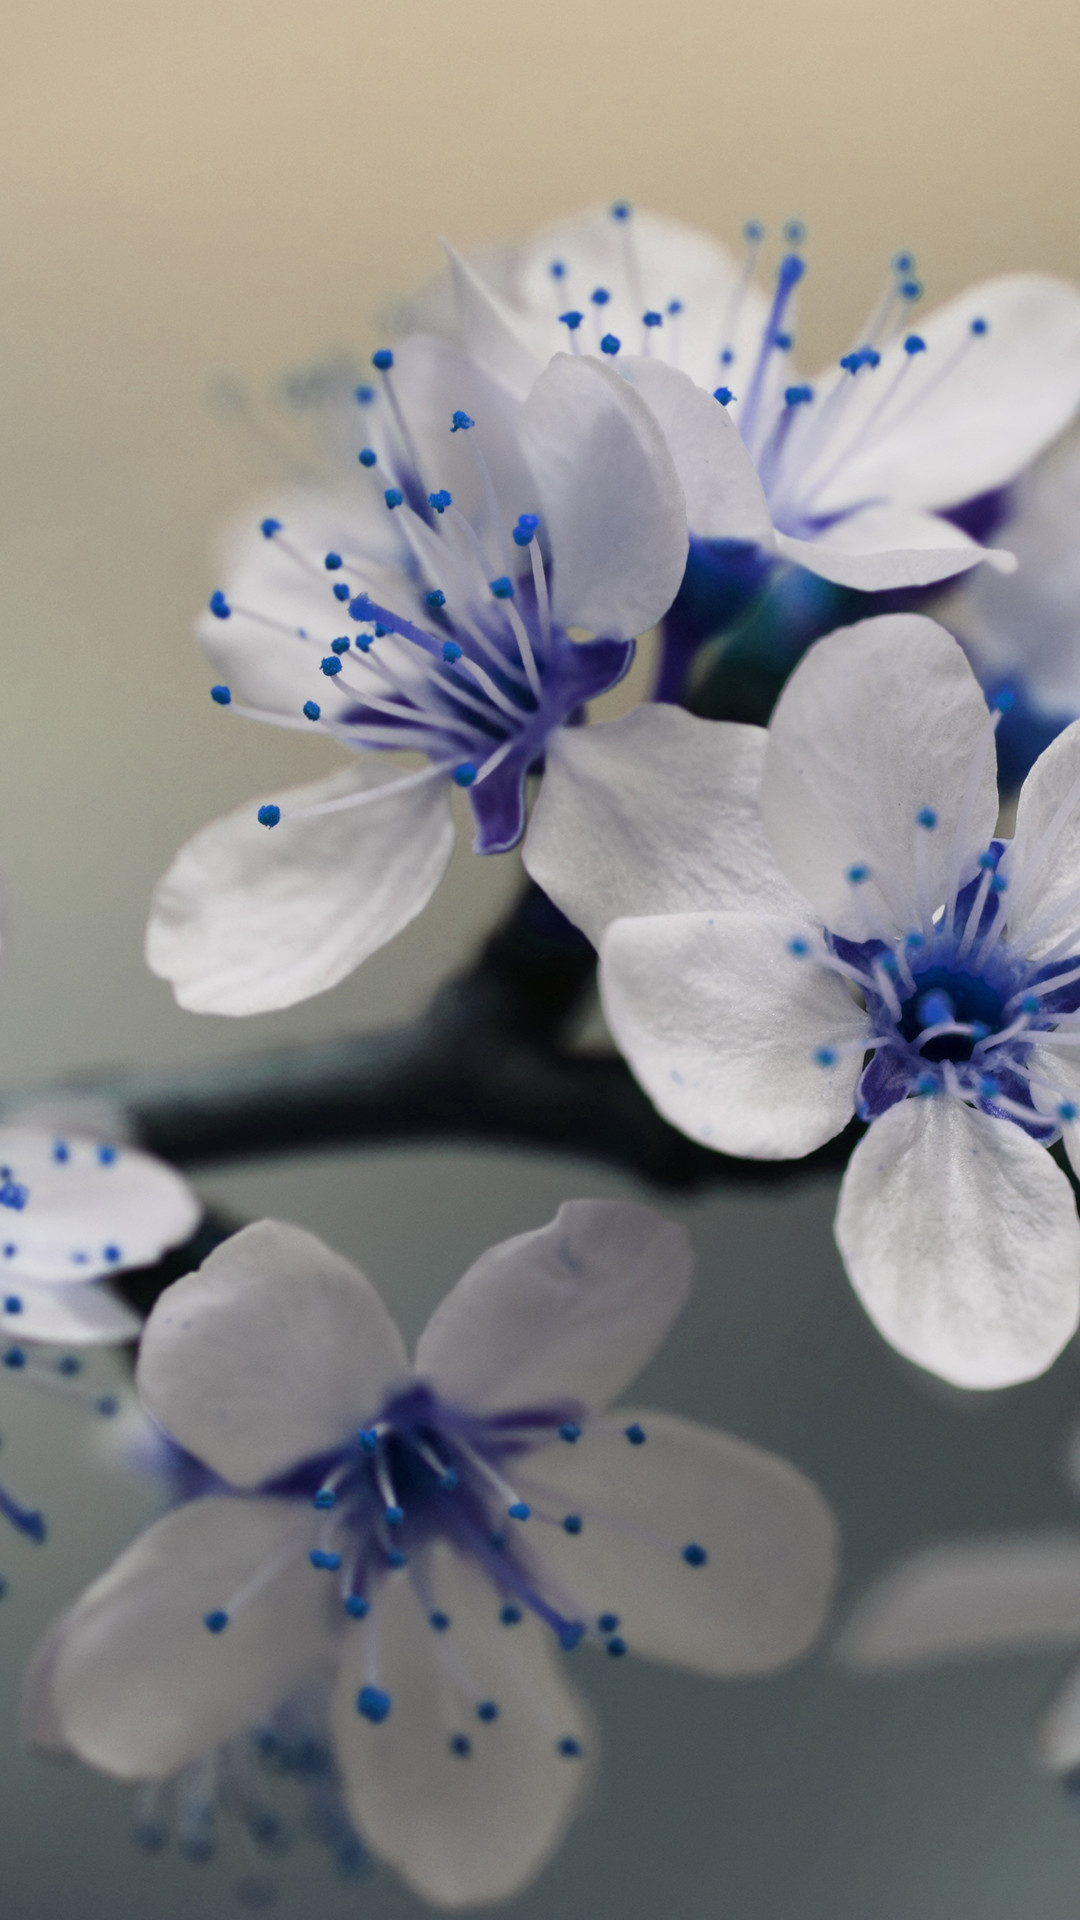 Blue Flowers Wallpaper 62 Pictures